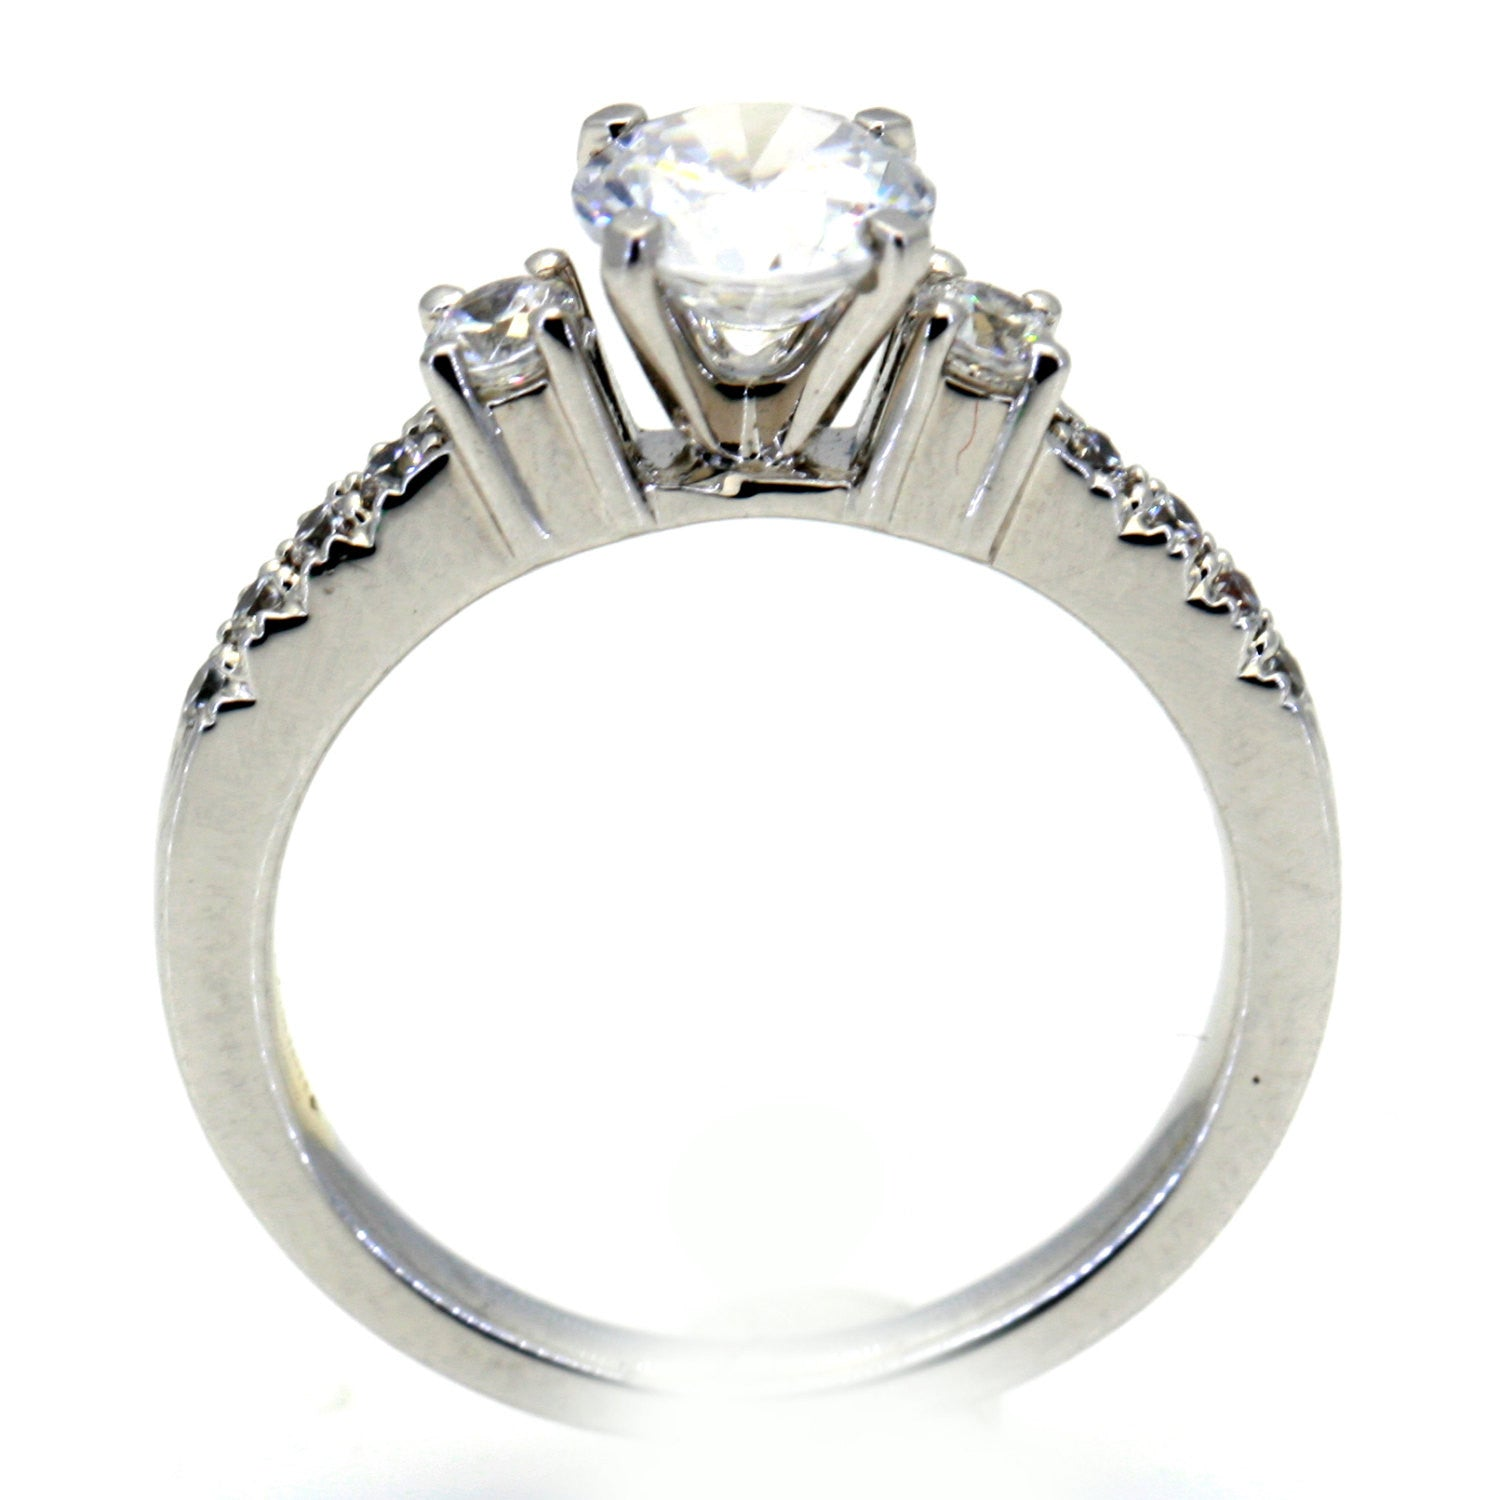 14 Karat White Gold Engagement Ring, Unique, For 1 Carat Round Center Stone, With .35 Carat Diamonds, Anniversary Ring, Semi Mount - 76302